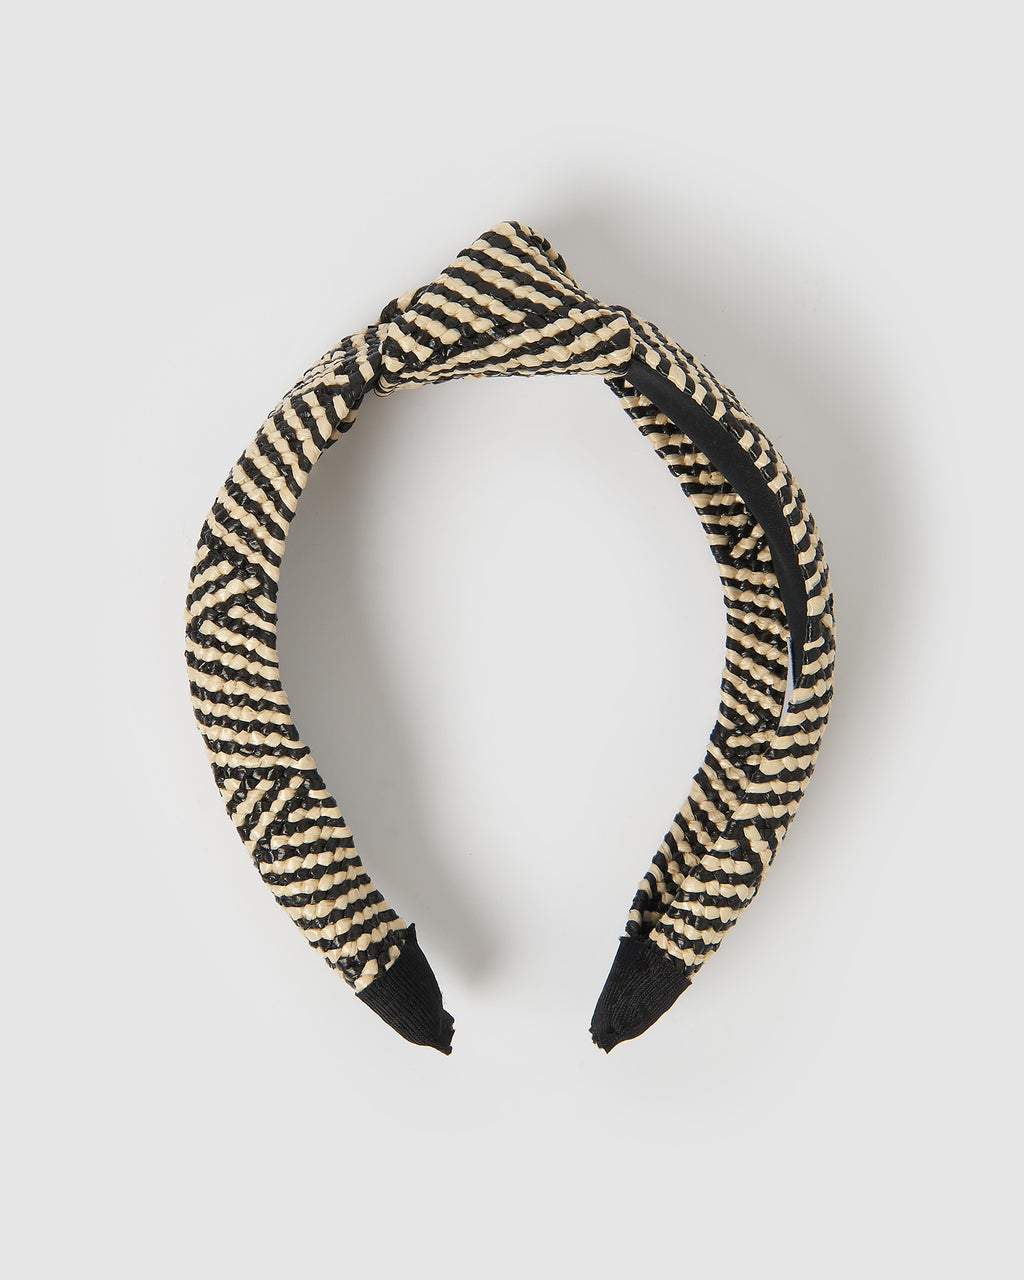 Izoa Sandy Headband Black & White